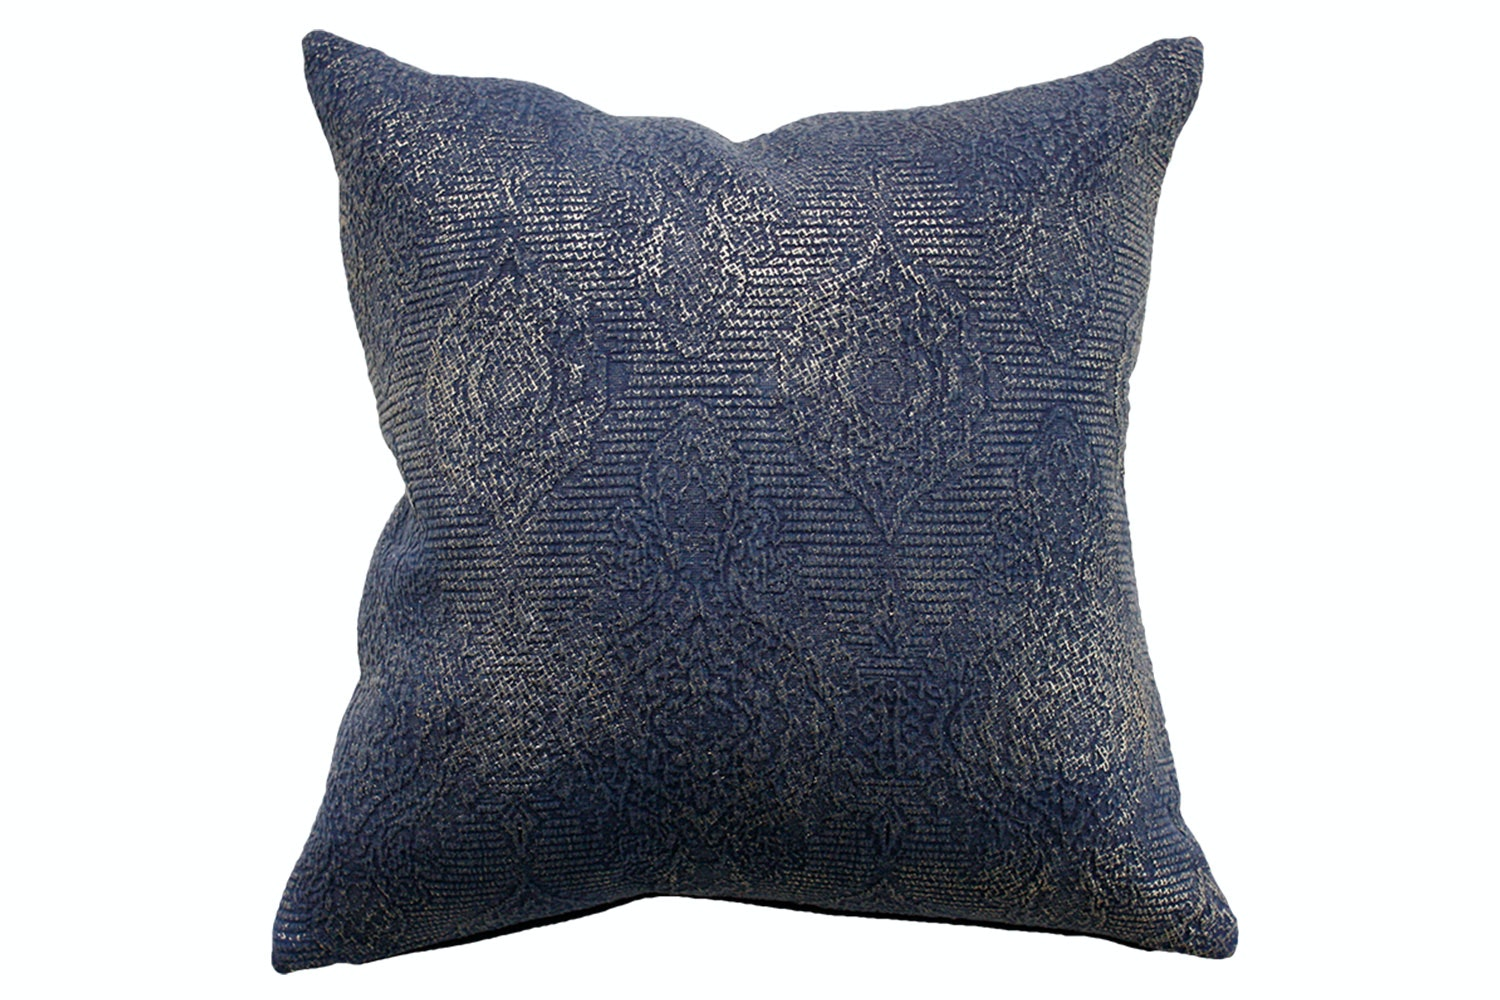 Alchemy Denim Gold Foil Square Cushion by Mulberi